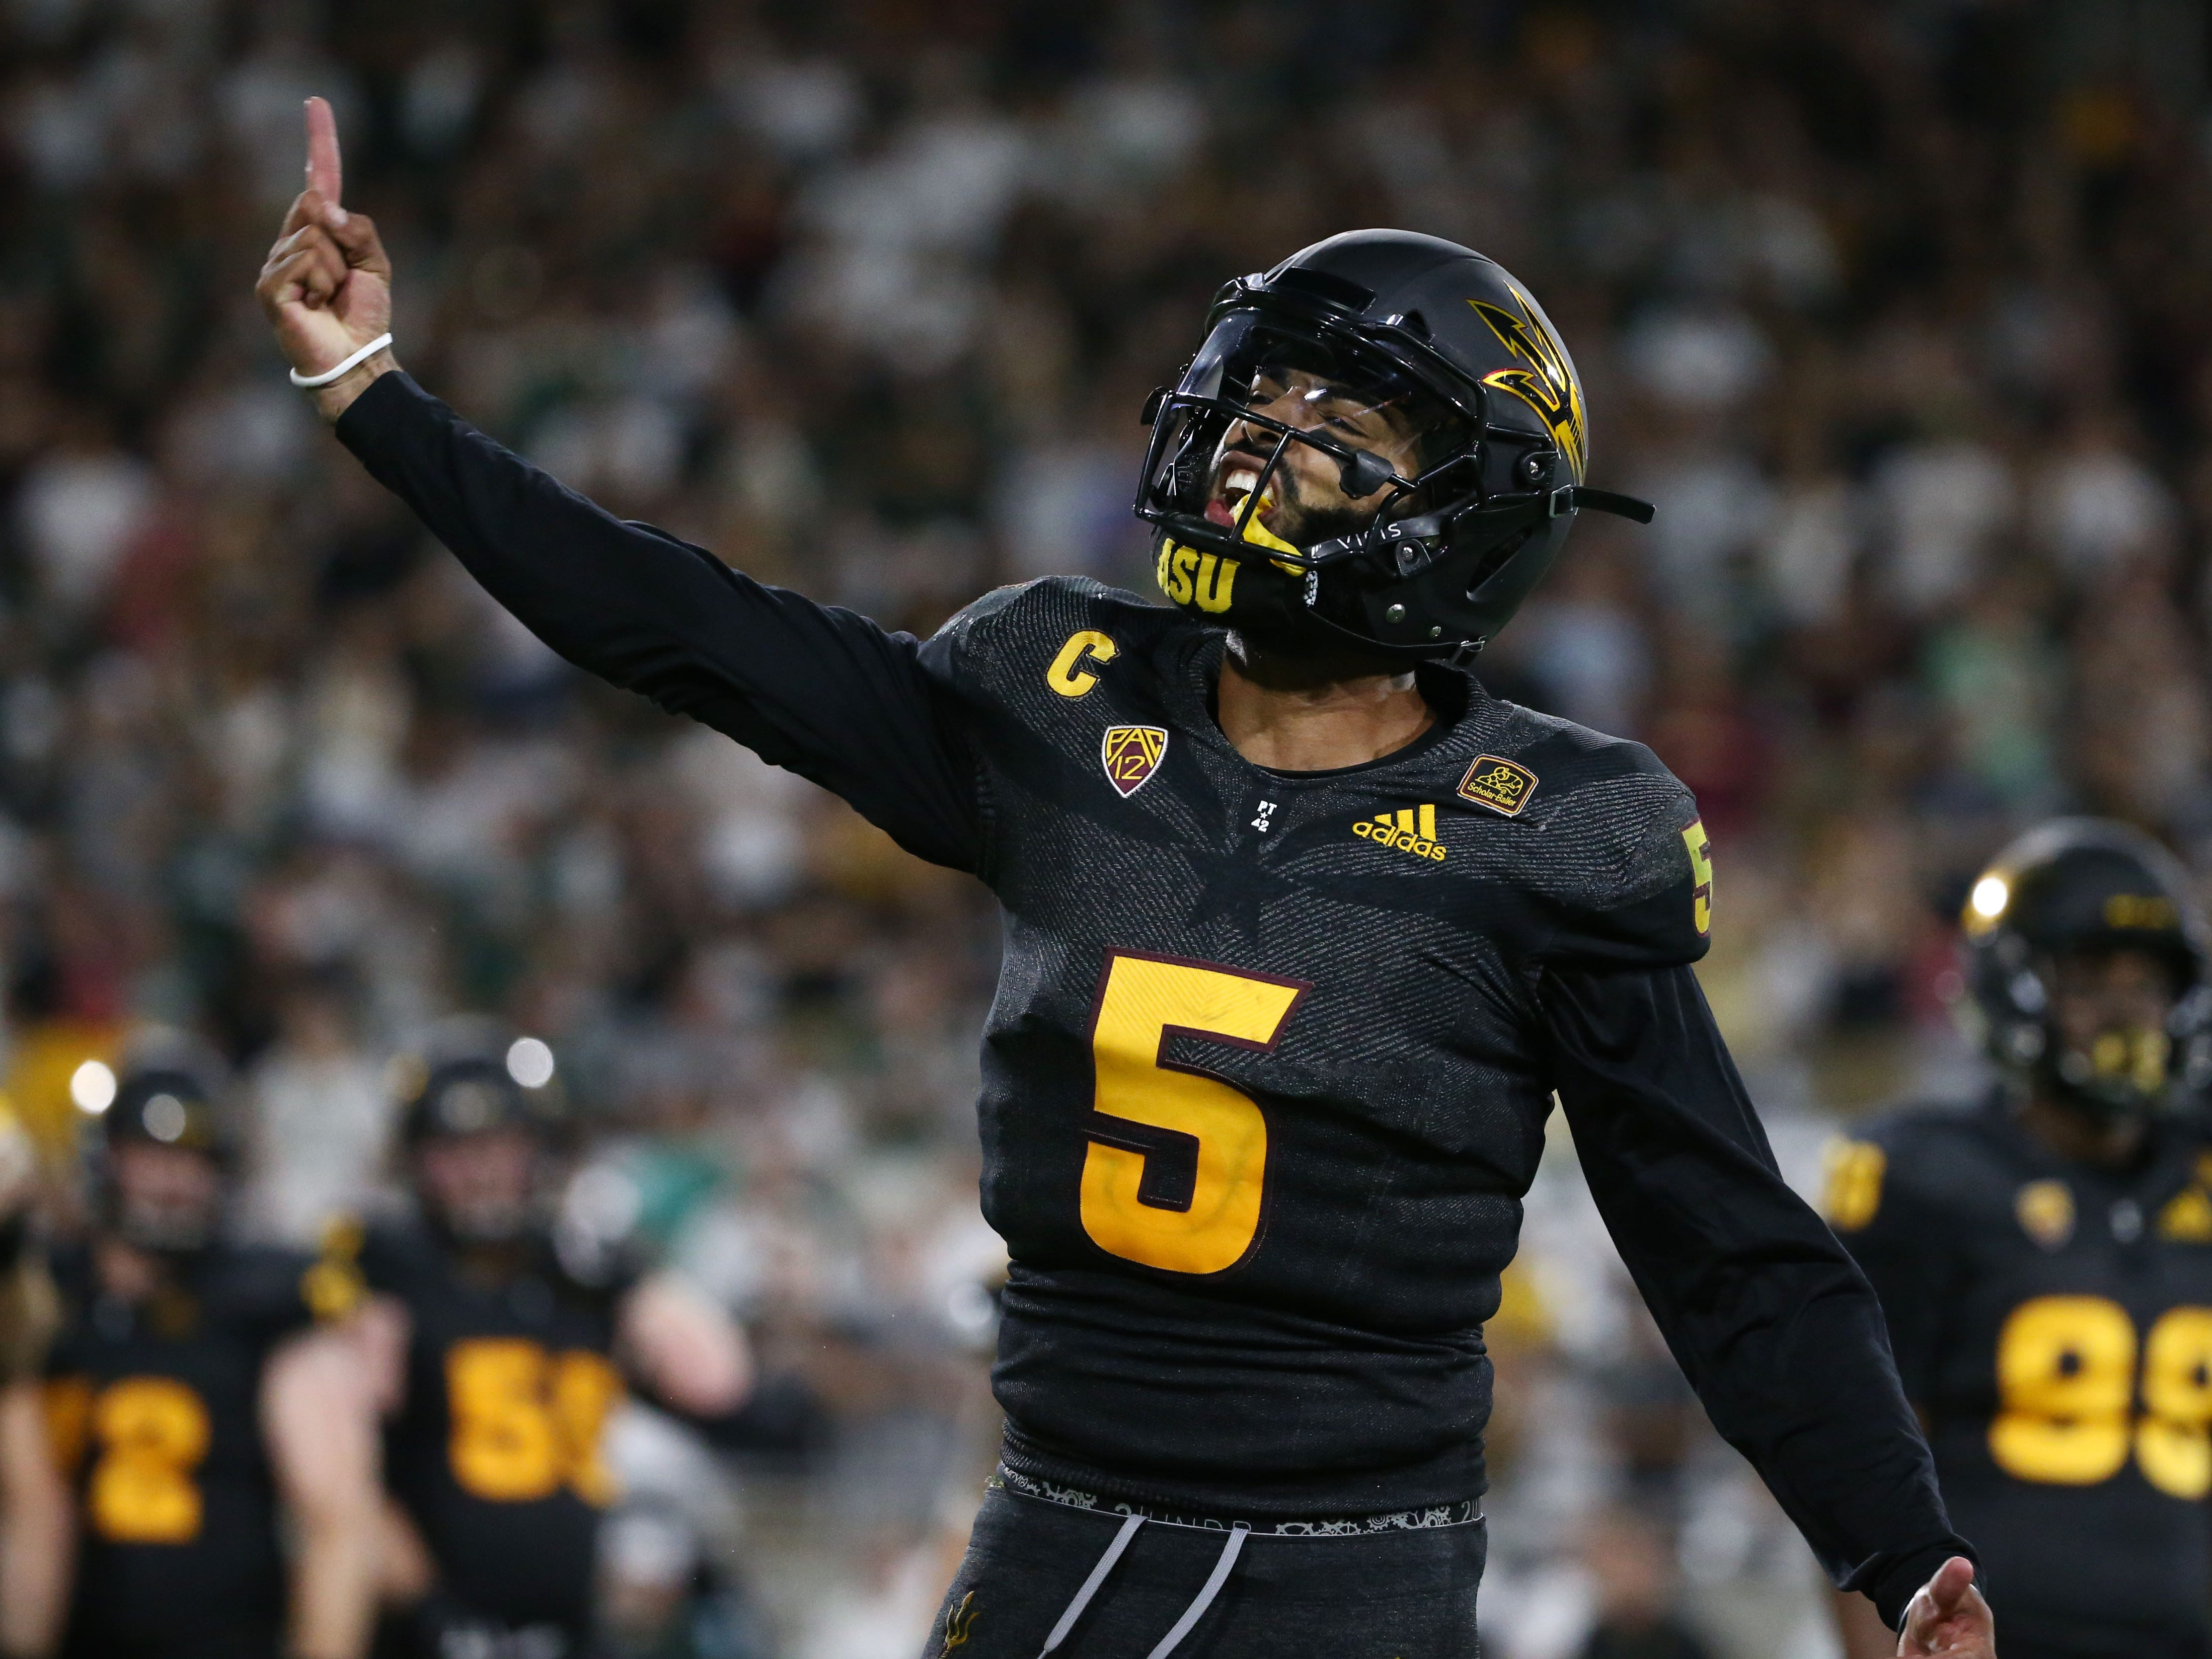 Arizona State quarterback Manny Wilkins reacts as the Devils prepares to kick the game winning field goal against Michigan State in the second half on Sep. 8, 2018, at Sun Devil Stadium.